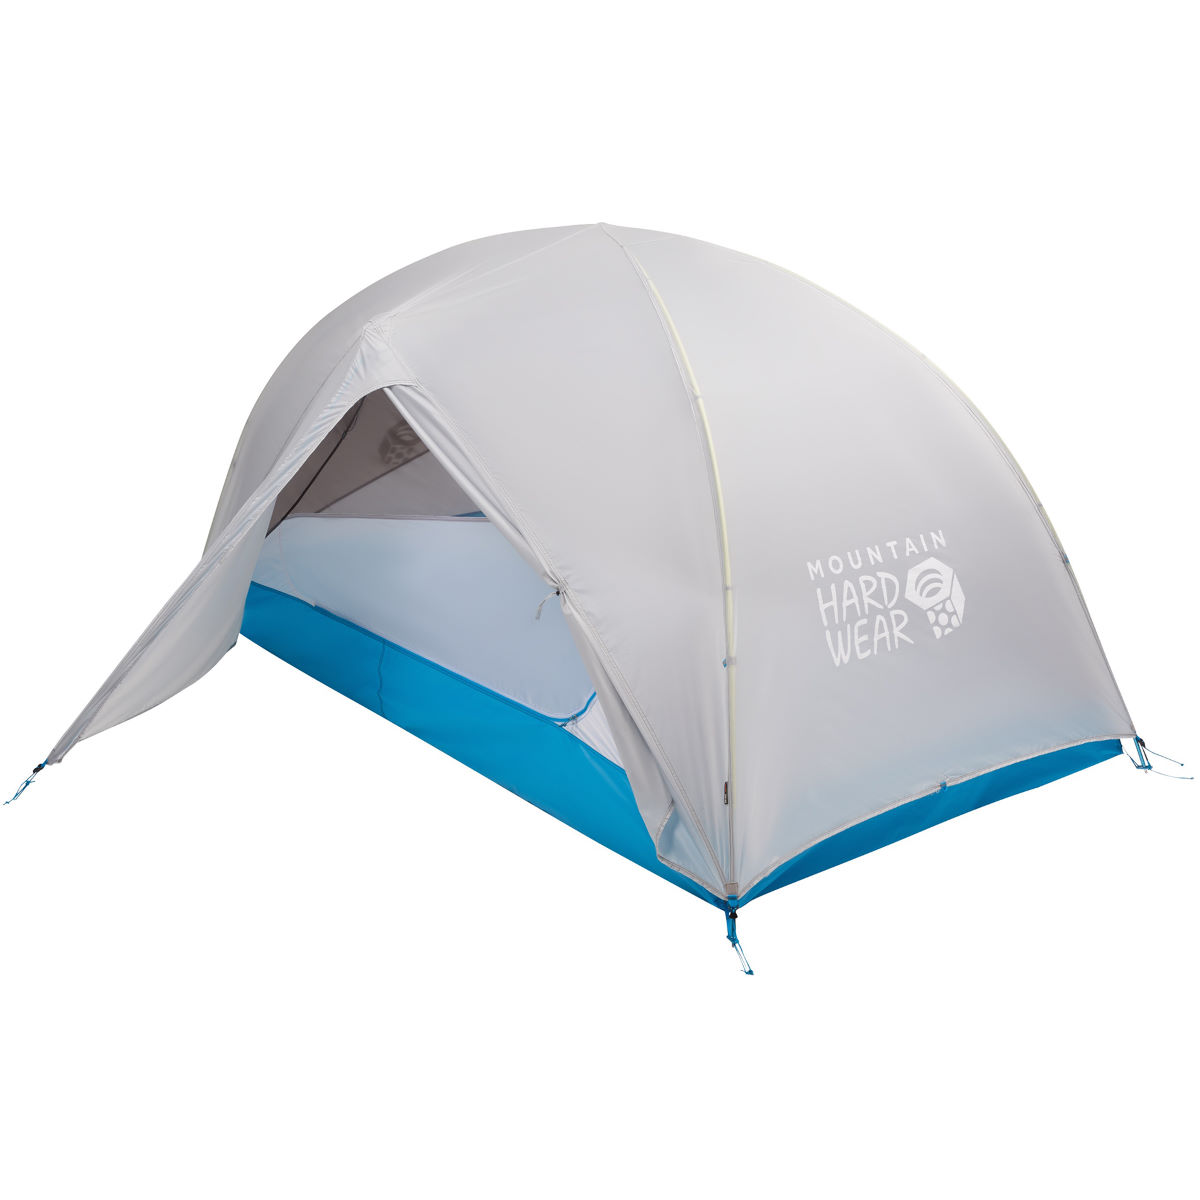 Mountain Hardwear Mountain Hardwear Aspect™ 2 Tent   Tents